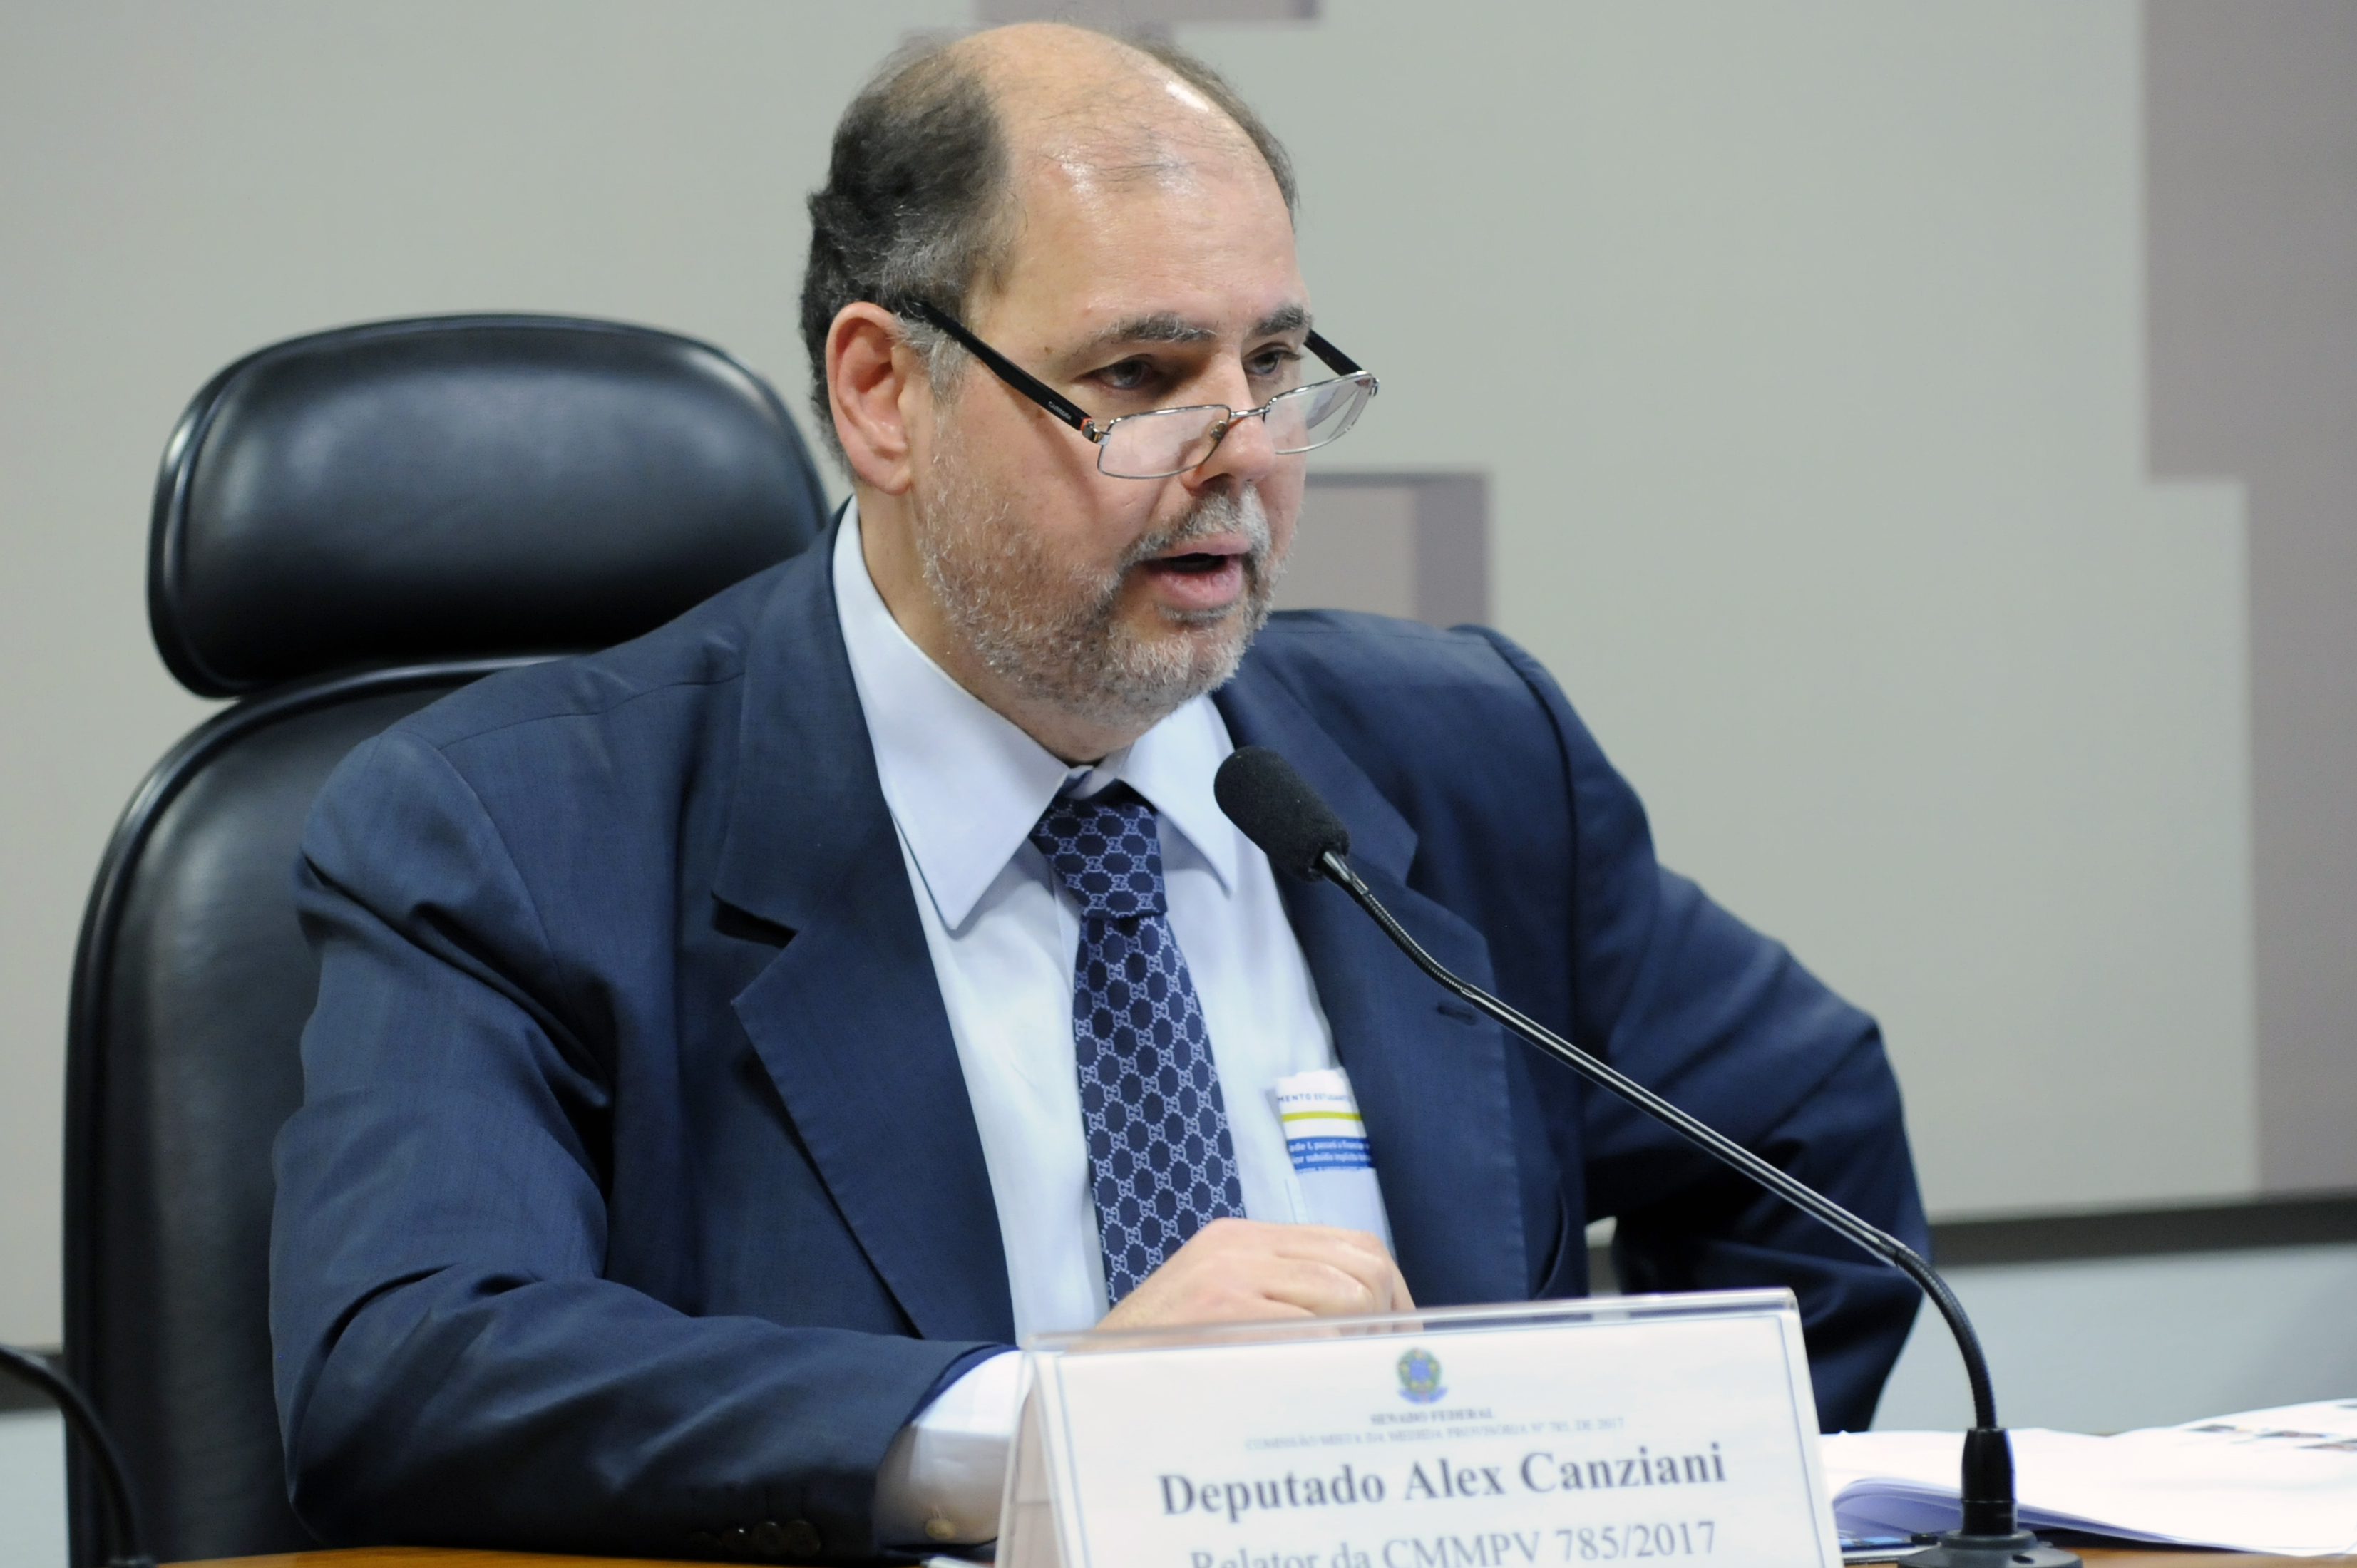 Comissão Mista sobre a MP 785/17, que modifica as regras do Fundo de Financiamento Estudantil (Fies). Dep. Alex Canziani (PTB - PR)